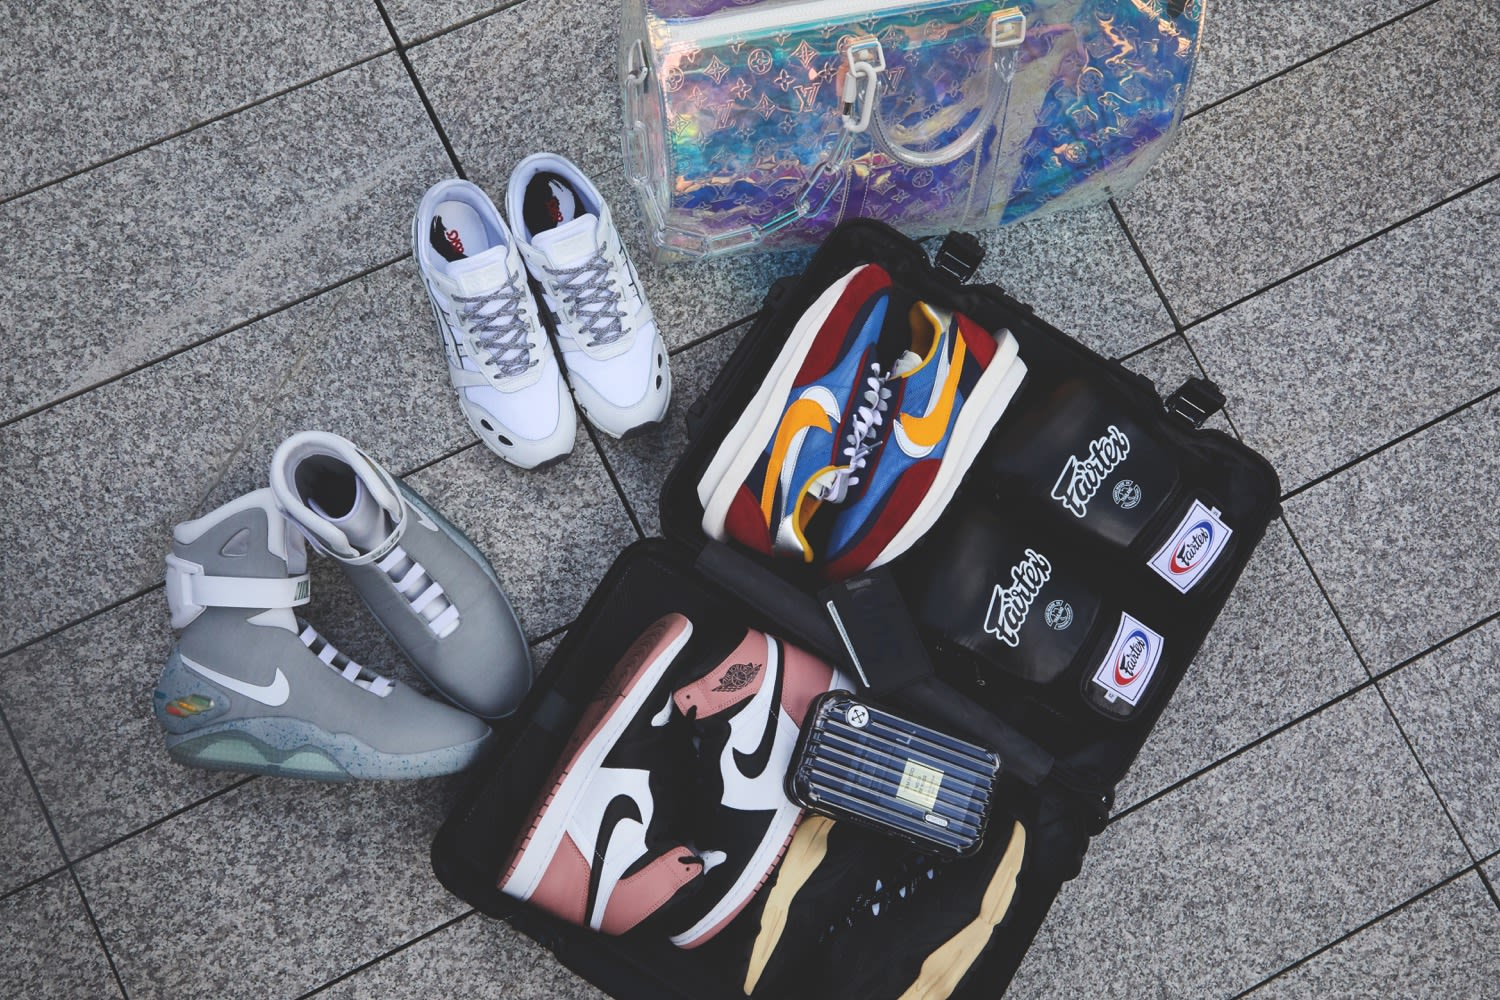 Thierry Tek's Flight Case Sneakers for END. featuring Nike MAGs, Sacai x Nike LDWaffles, Air Jordan 1 'Miami Art Basel' and more